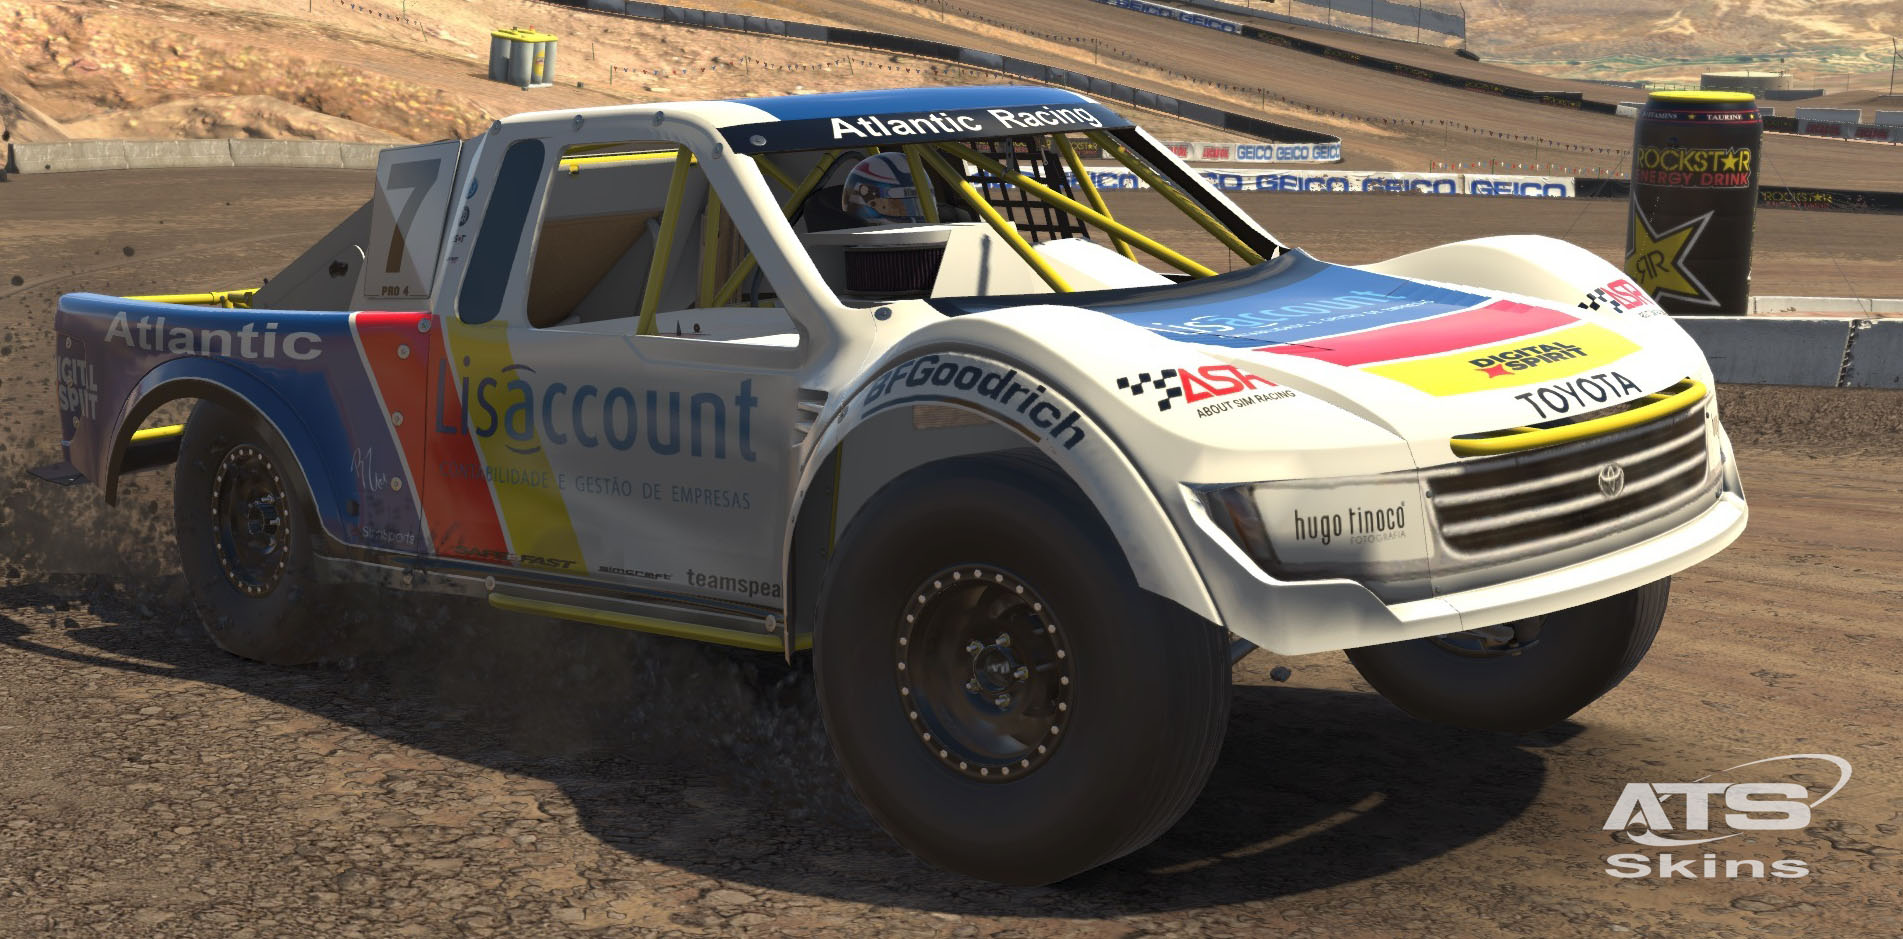 Atlantic Motorsport presents the new Lucas Oil Off Road Pro4 Stadium Truck for iRacing